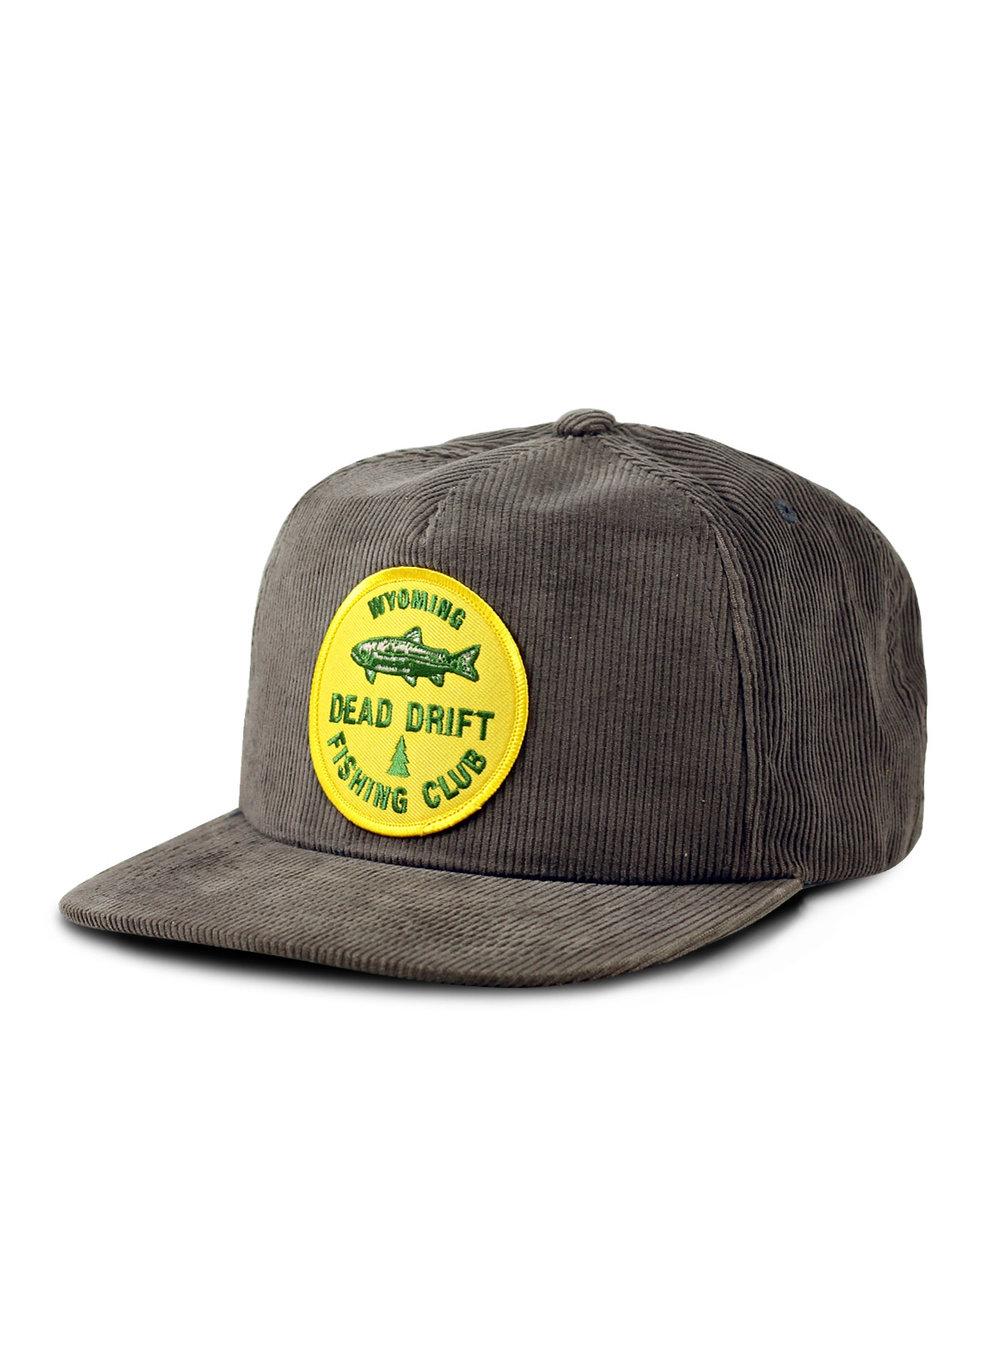 Dead drift fly fishing club corduroy dead drift for Trout fishing hats